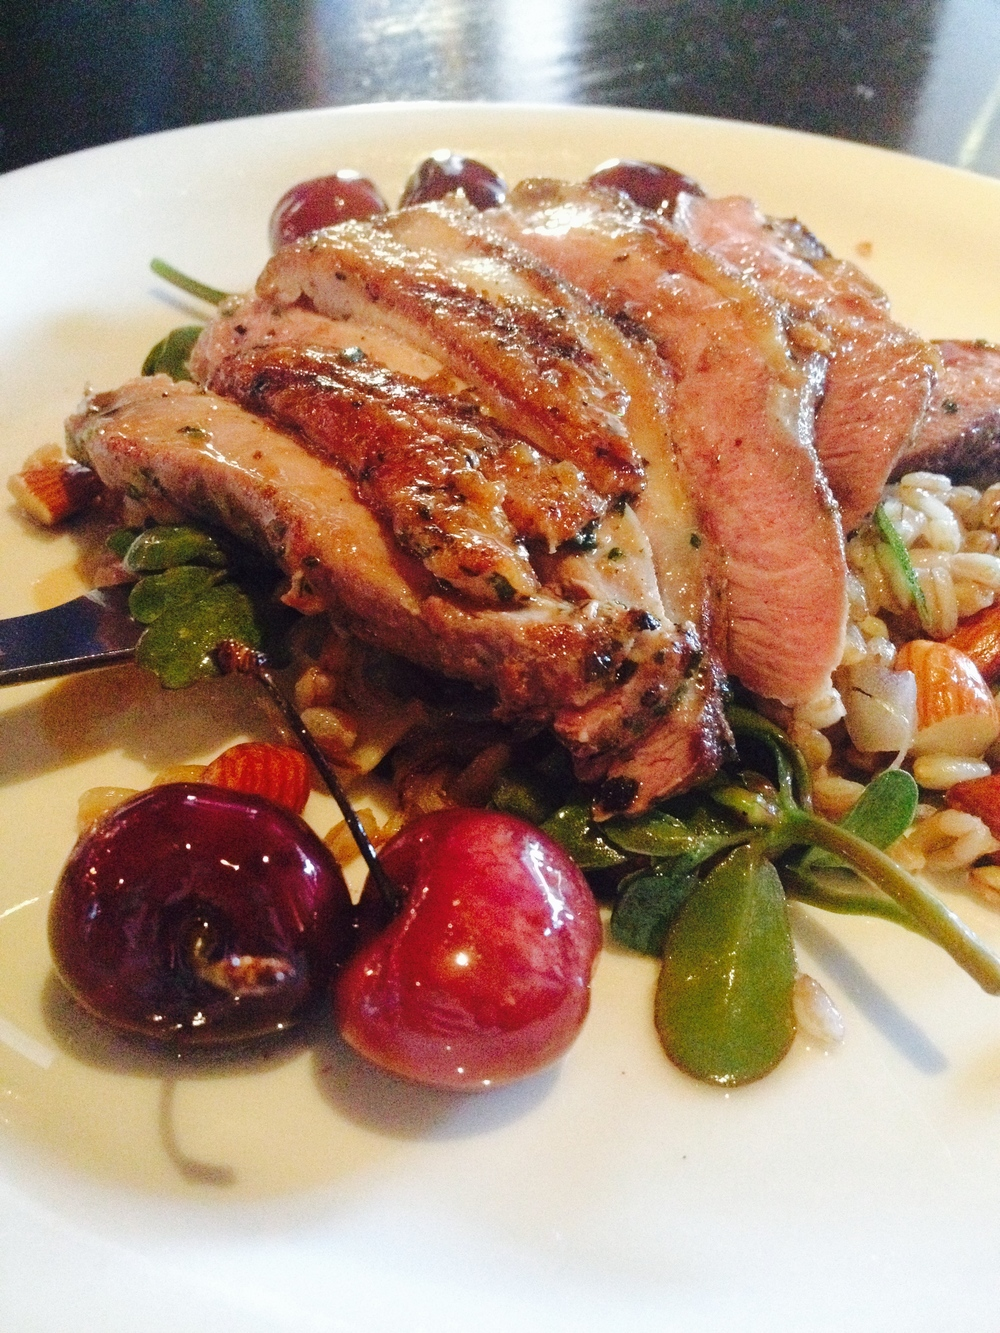 California duck breast with sautéed farro, purslane, roasted cherries, and toasted almonds.